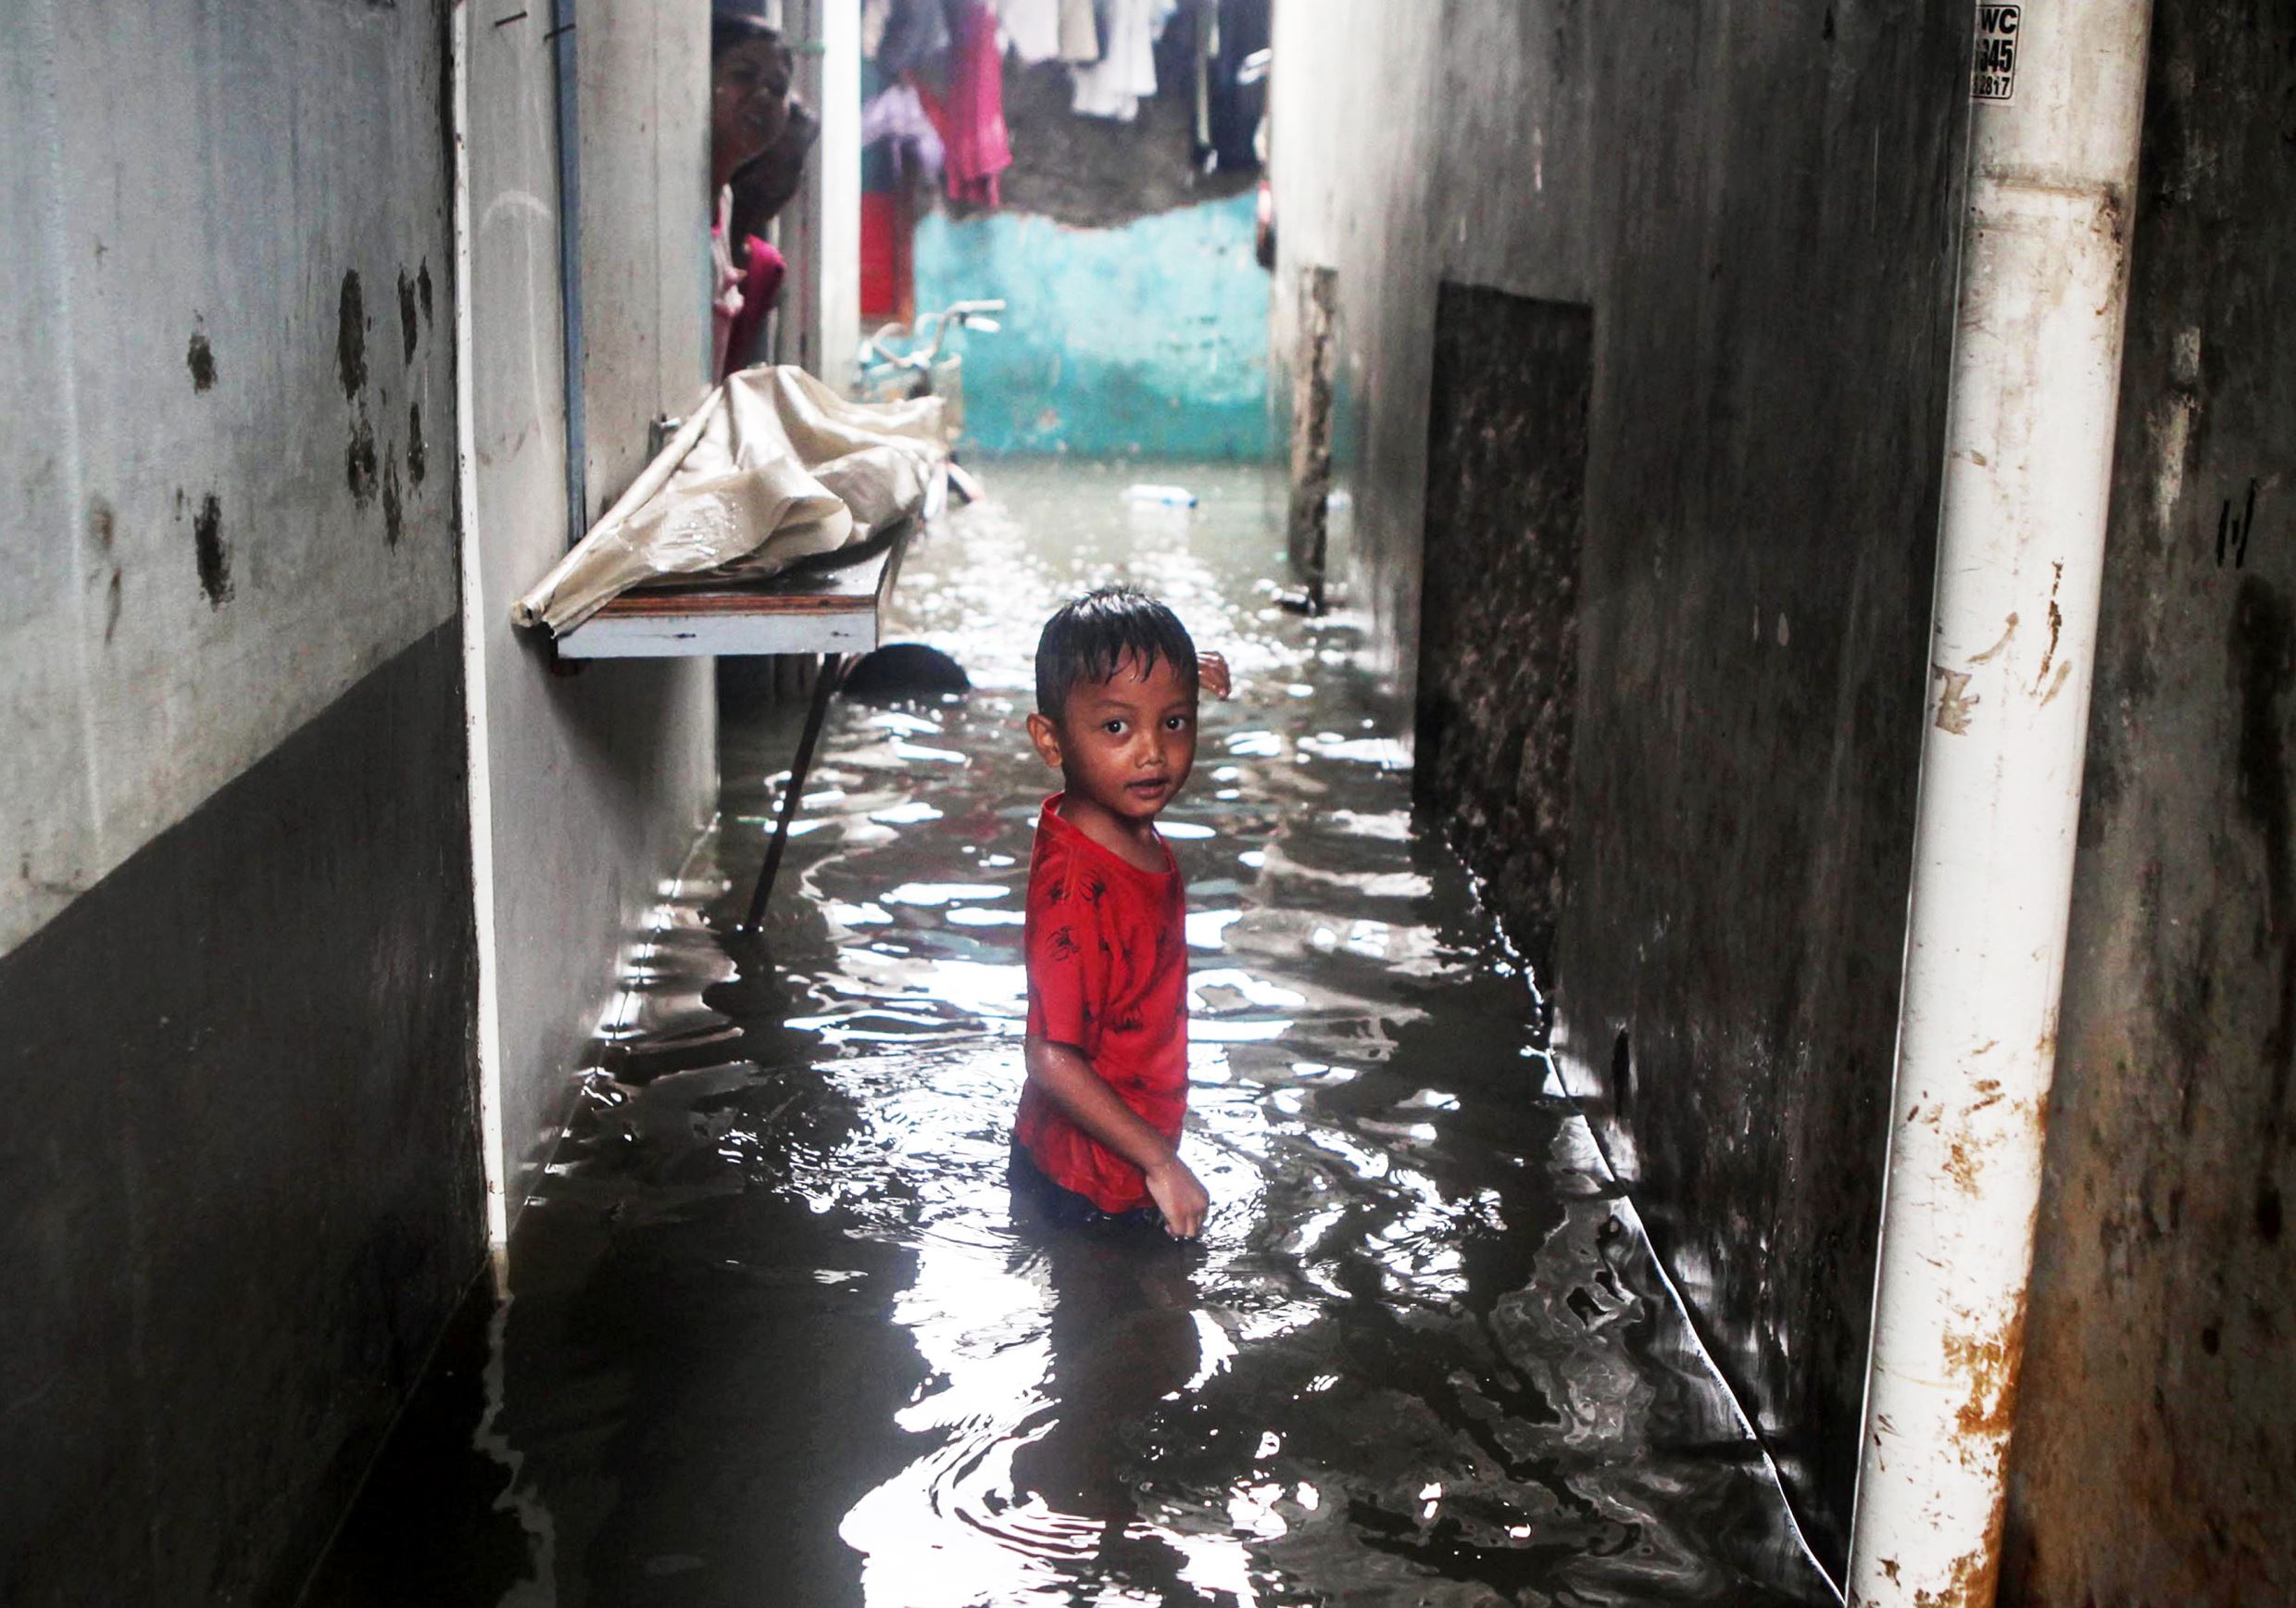 Слайд 24 из 86: JAKARTA, INDONESIA - FEBRUARY 26: A young boy looks on as residential areas remain flooded after heavy rain overnight in the Indonesia Capital of Jakarta, on February 26, 2016. Seasonal rains and high tides in recent days have caused widespread flooding